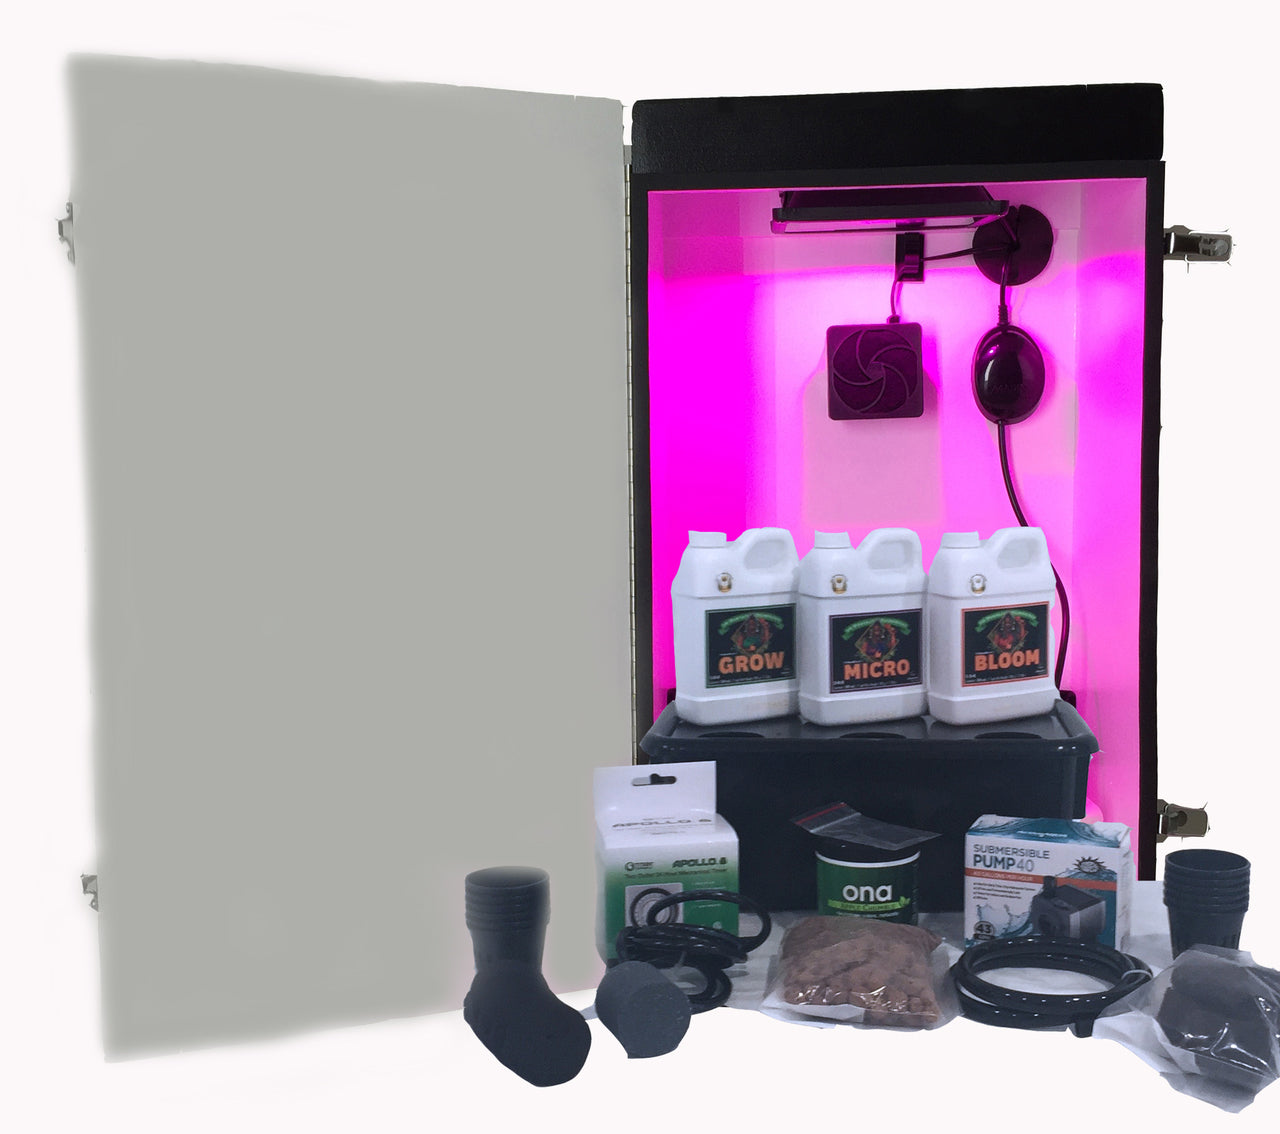 Baby Cloner - 6 Plant Baby Seedling or Cloning Grow Box Cloner